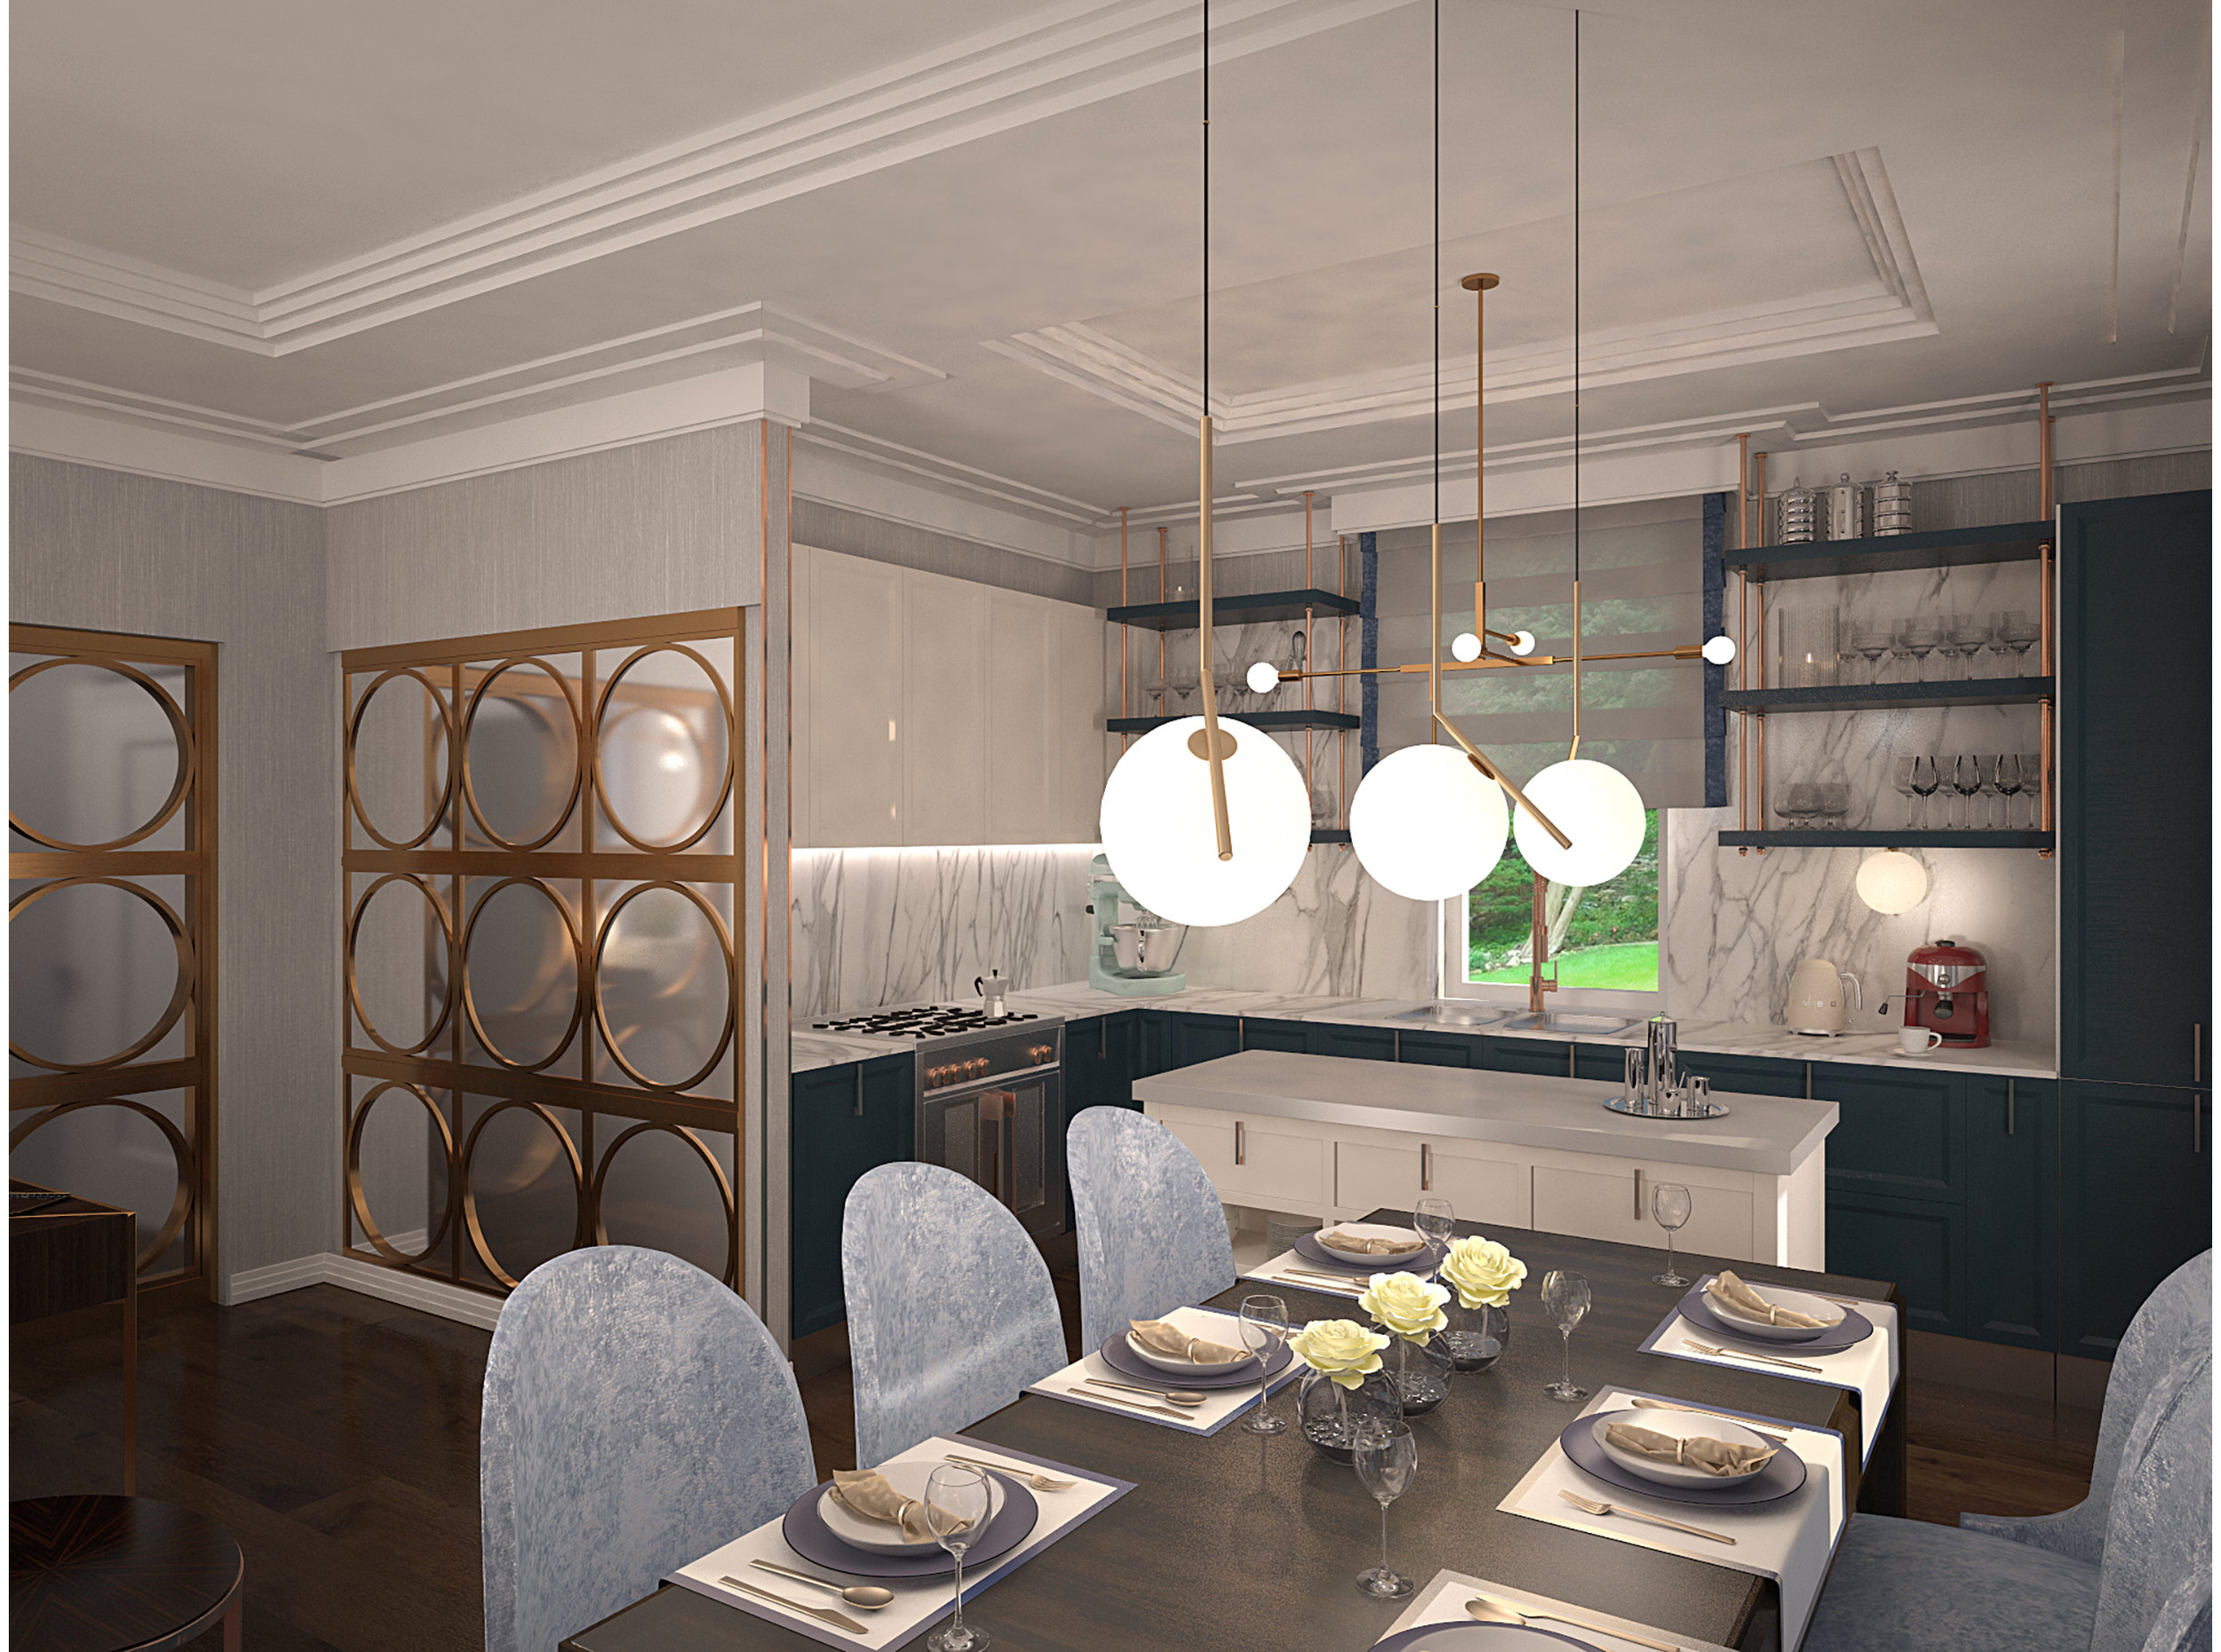 Copy of Kitchen/dining interior inspired by art deco style